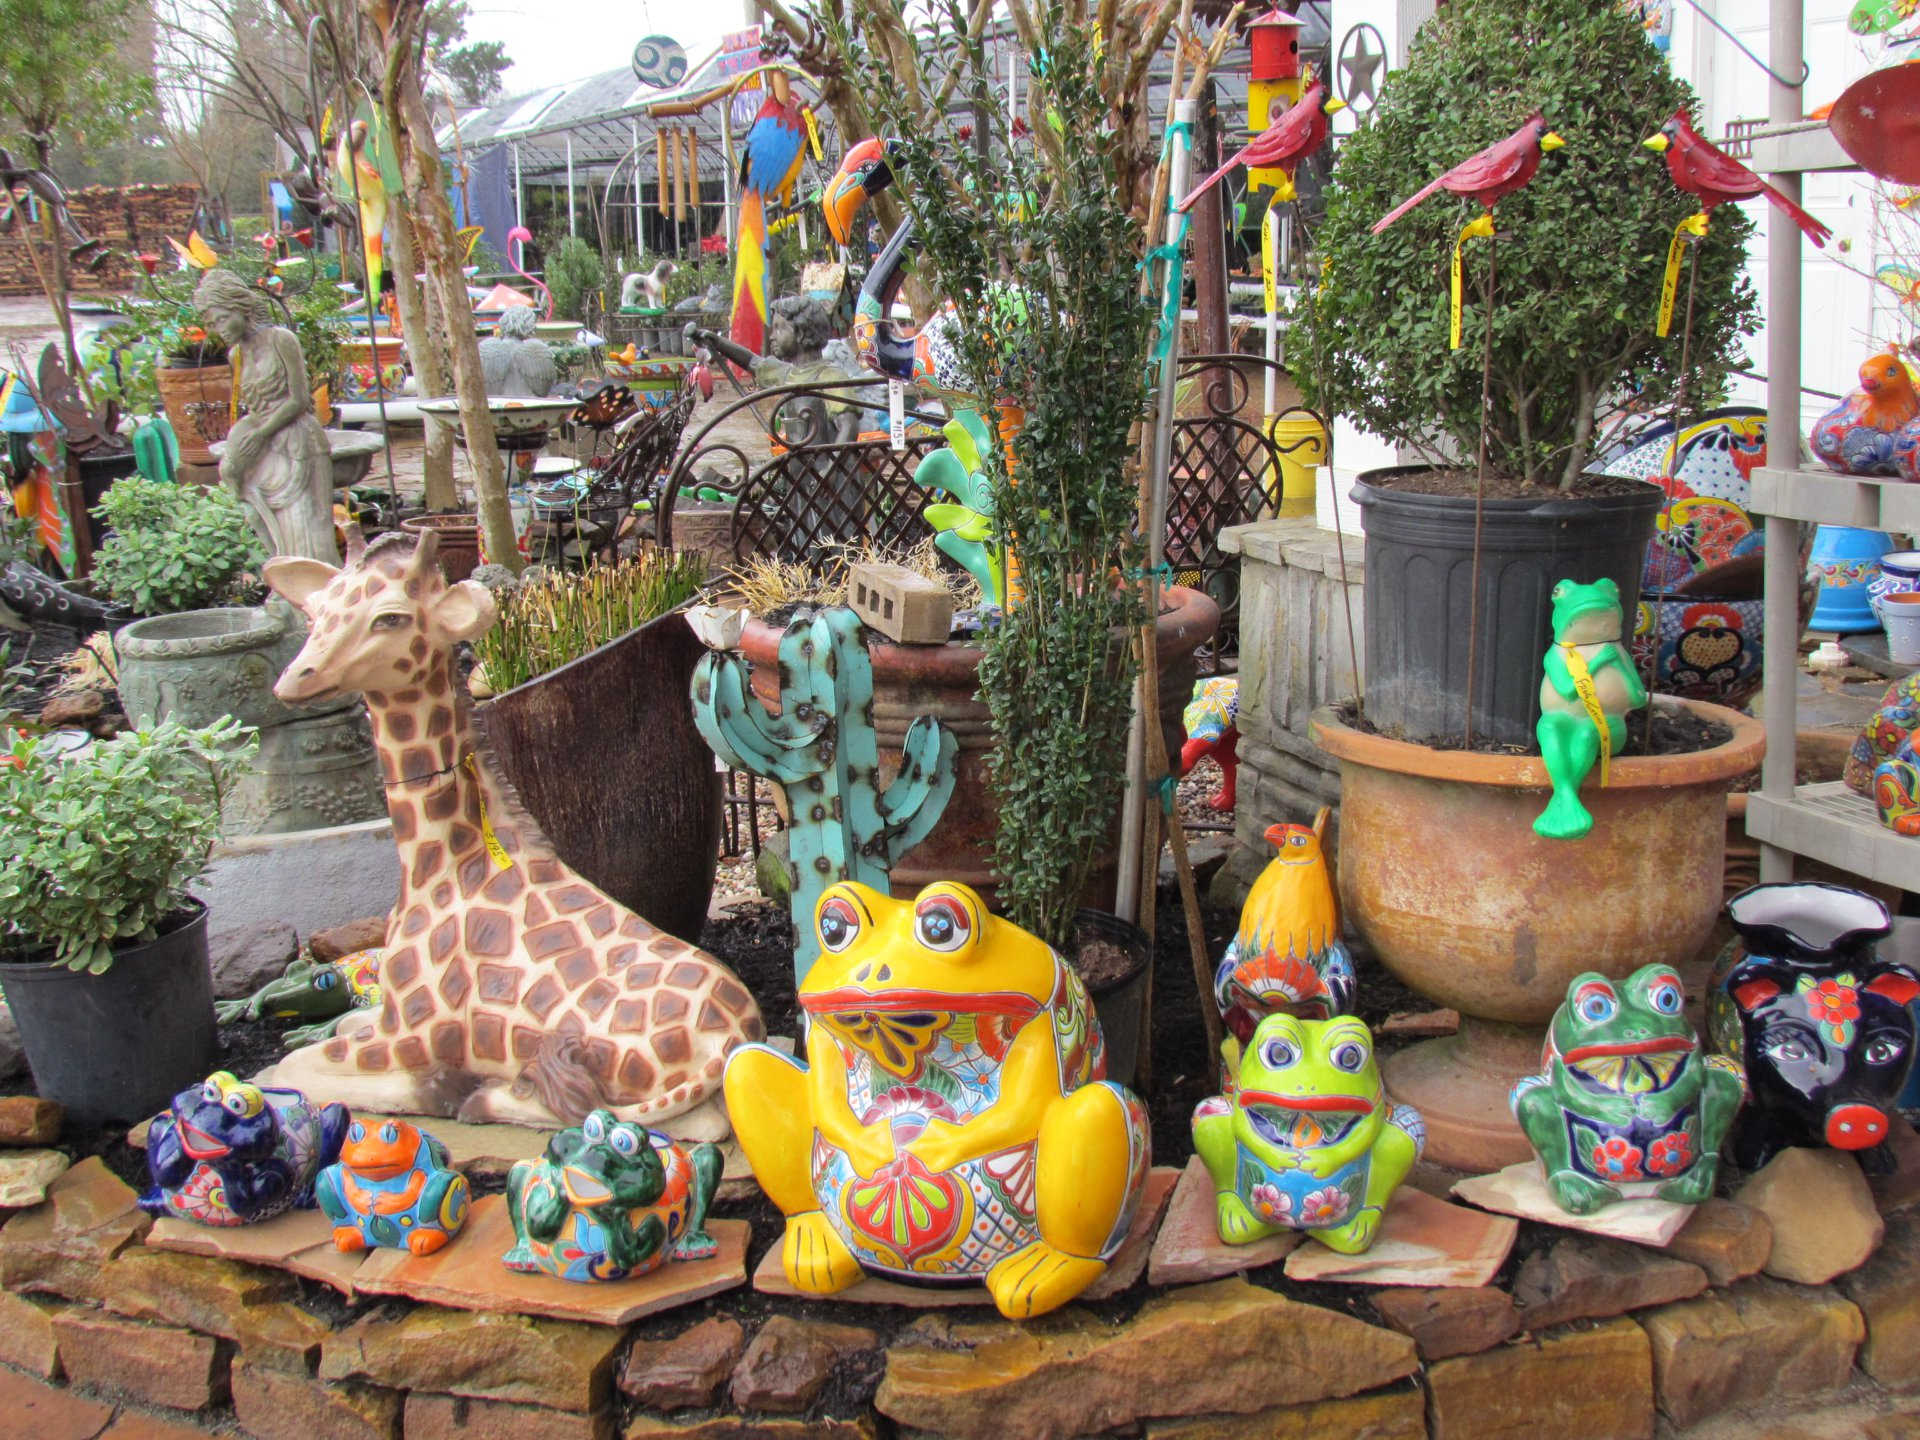 Talavera frog pottery at J&J Nursery, Spring, TX